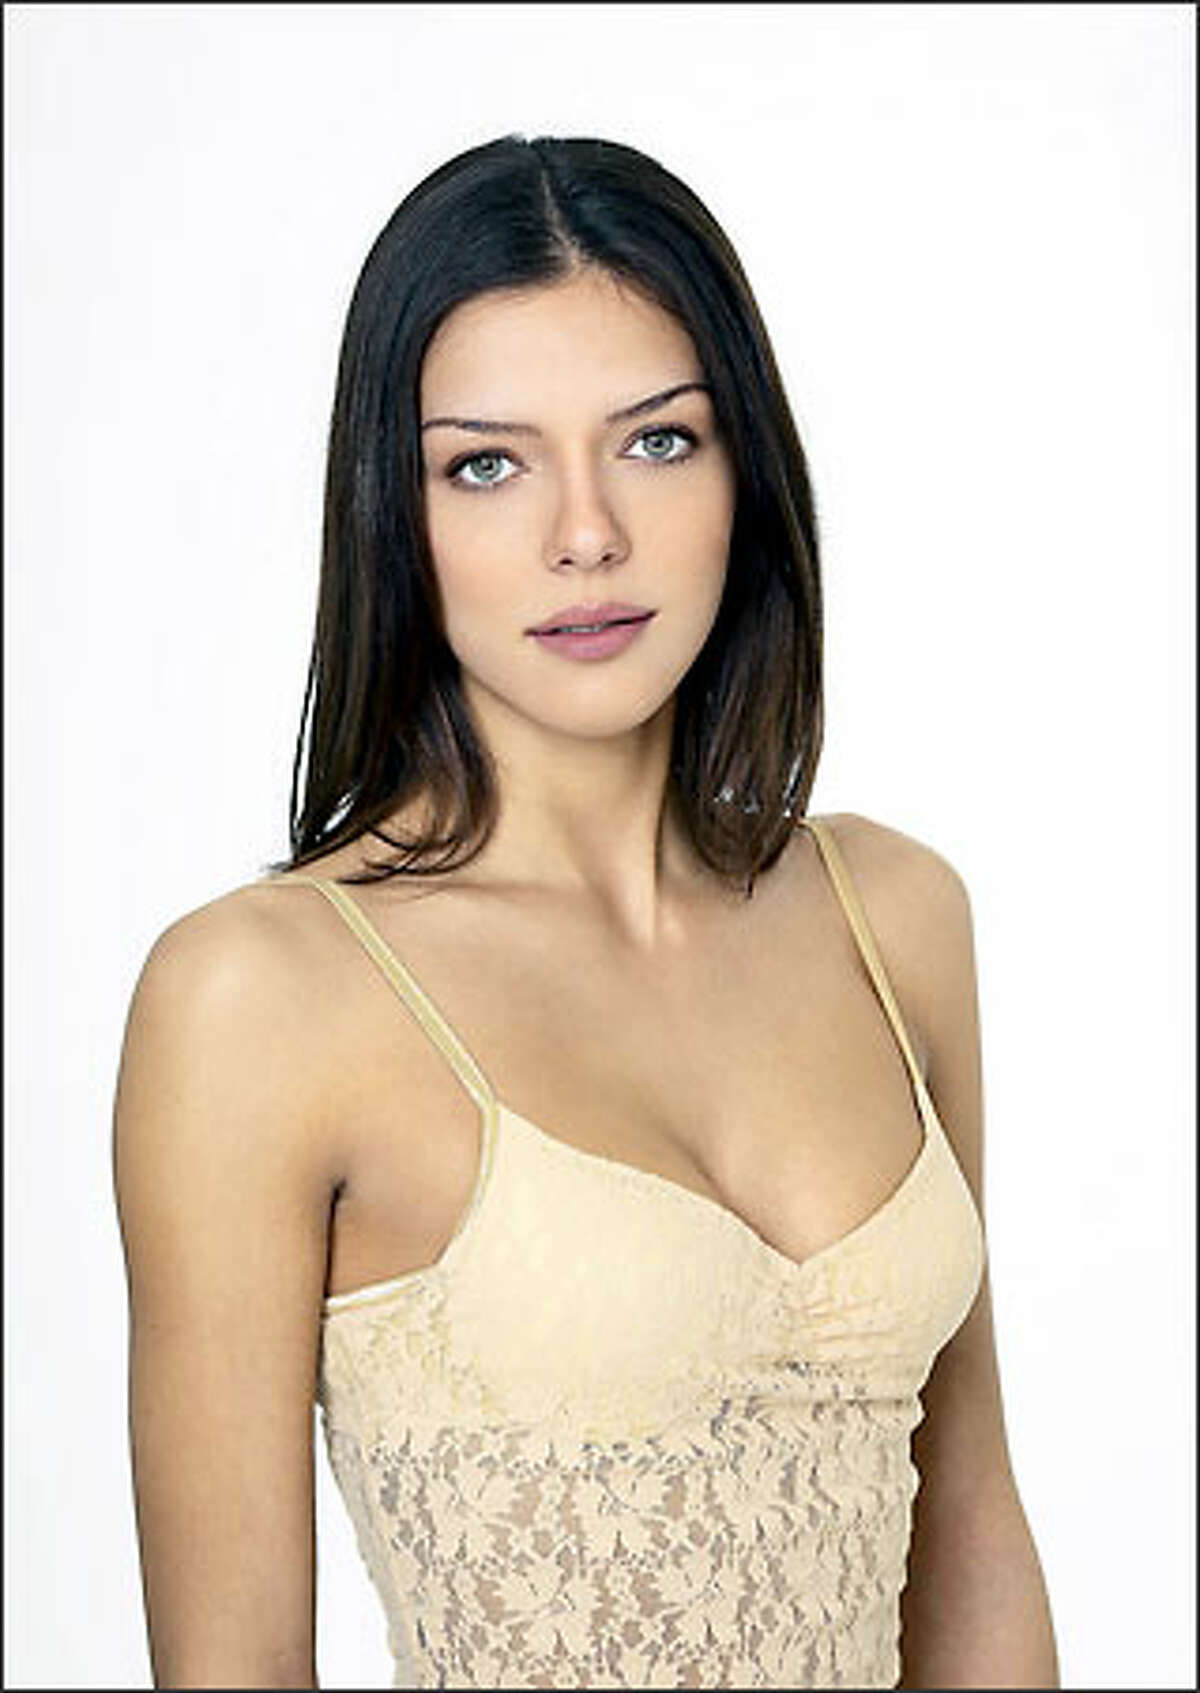 """""""America's Next Top Model"""" participant Adrianne Curry."""